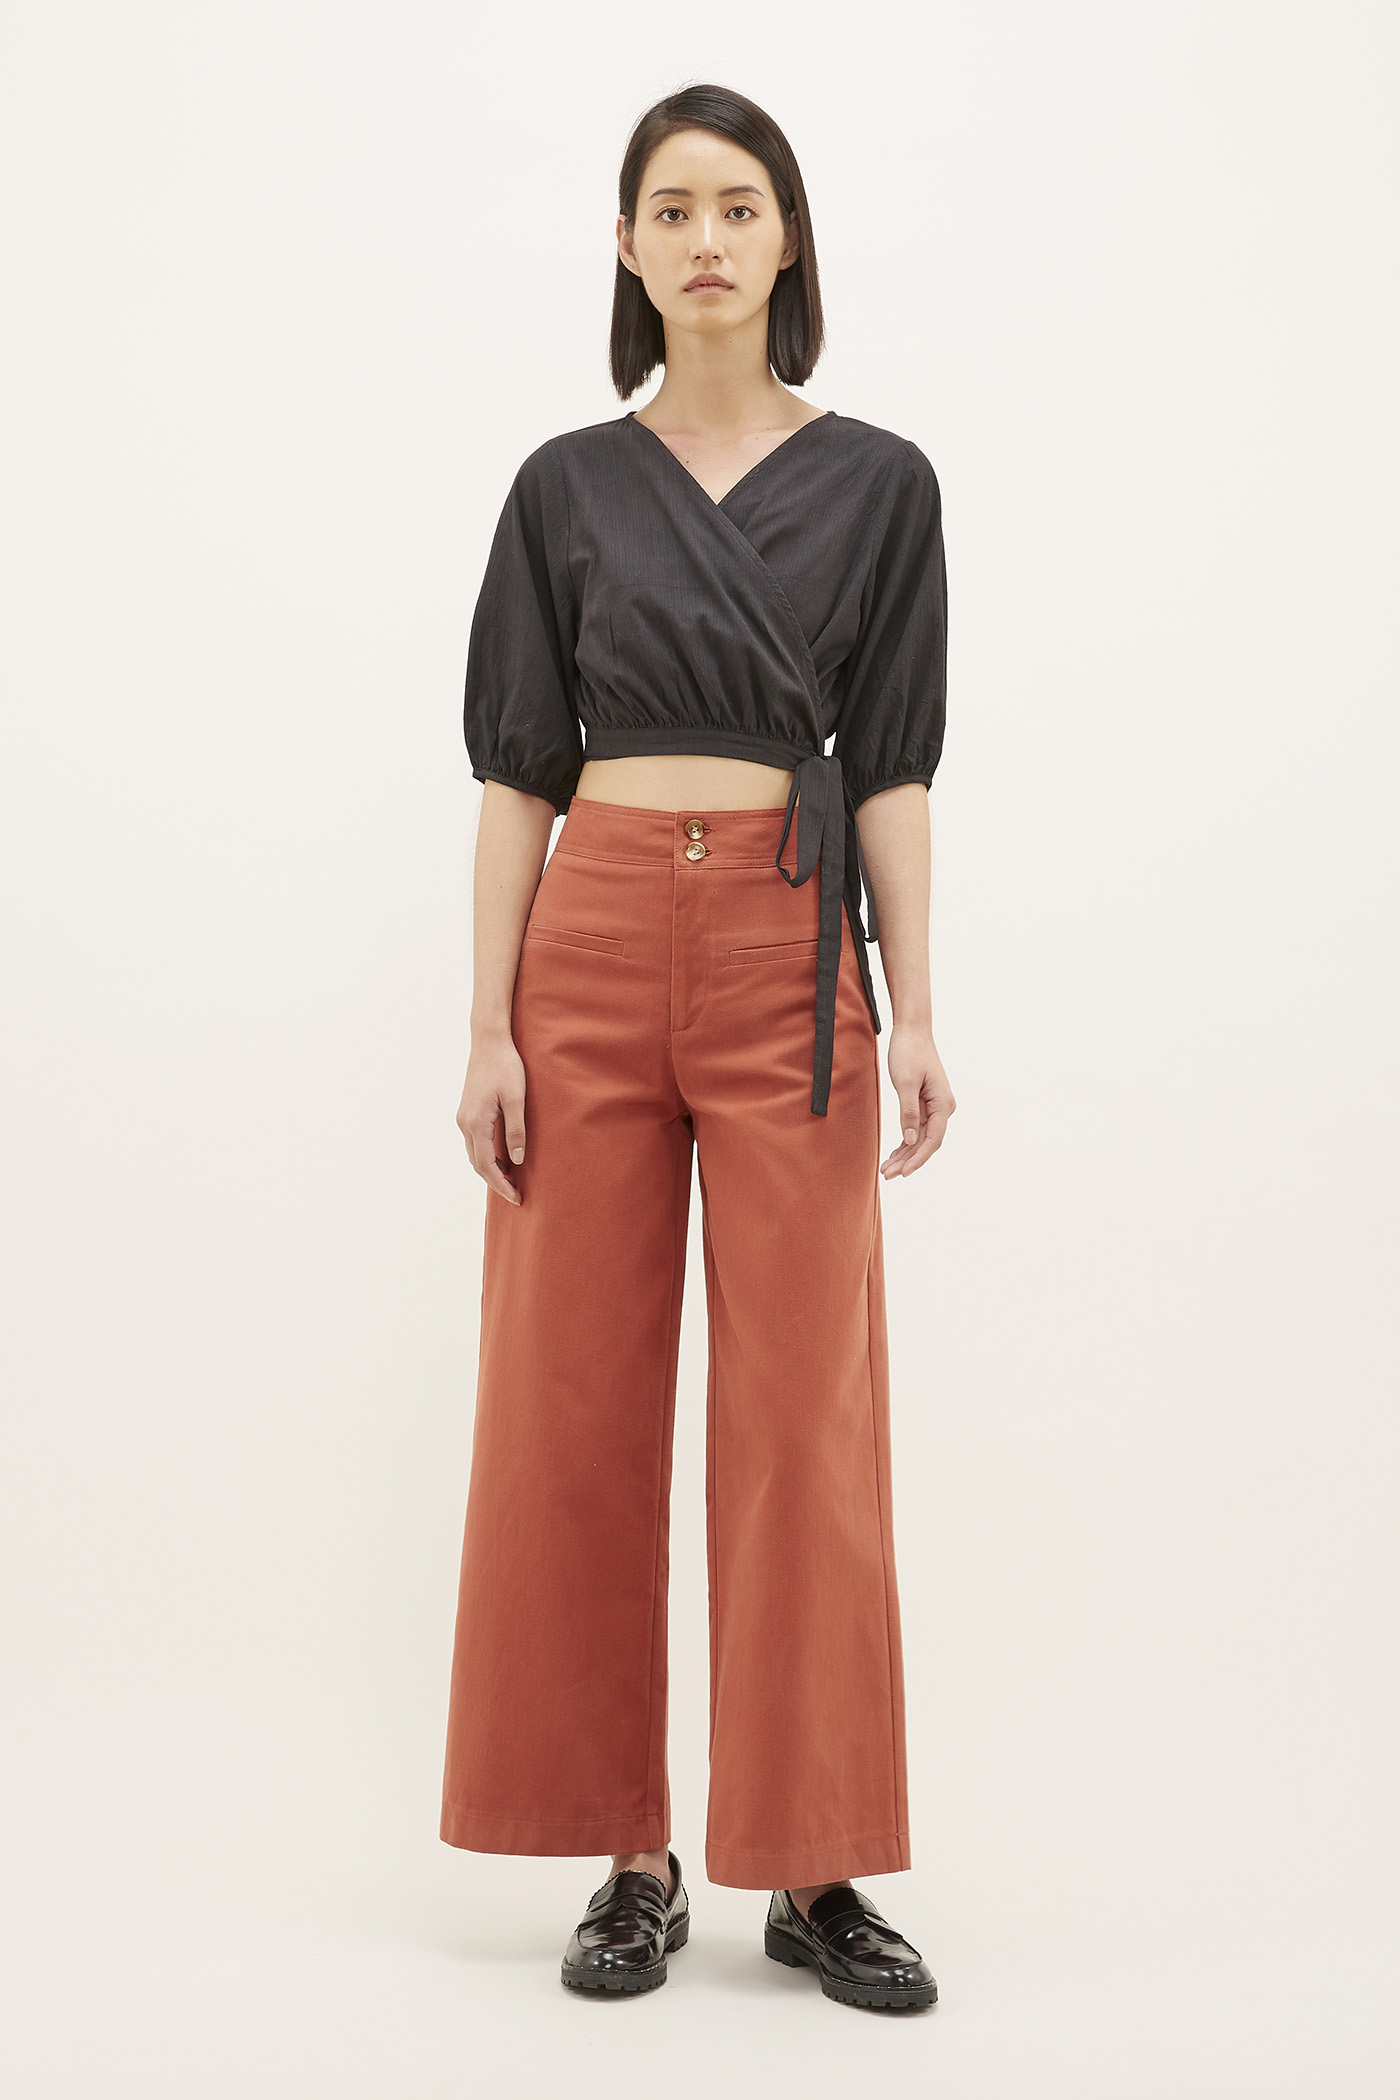 Xami Front Pocket Pants